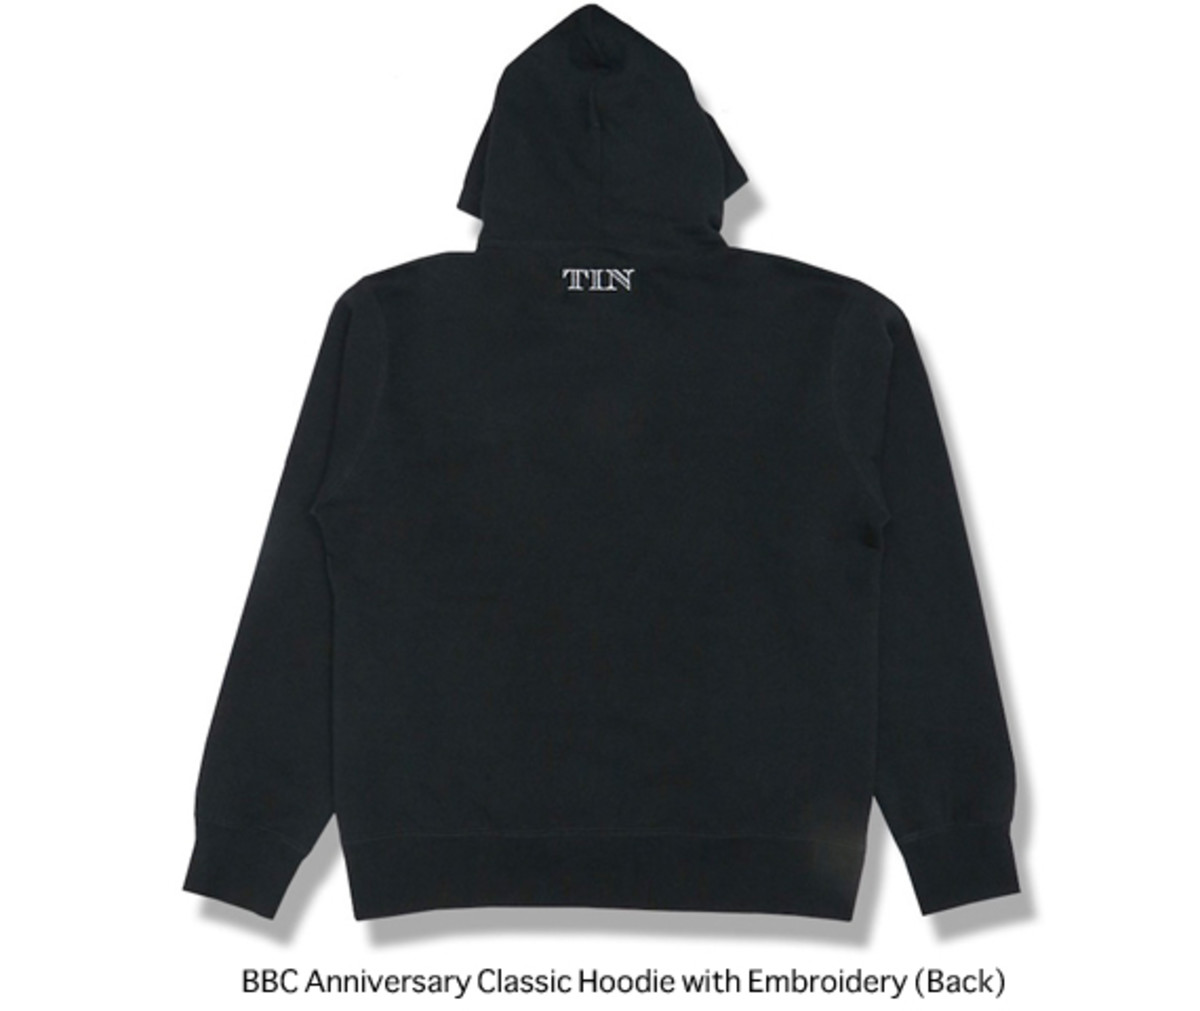 billionaire-boys-club-10th-anniversary-collection-hoodie-black-back